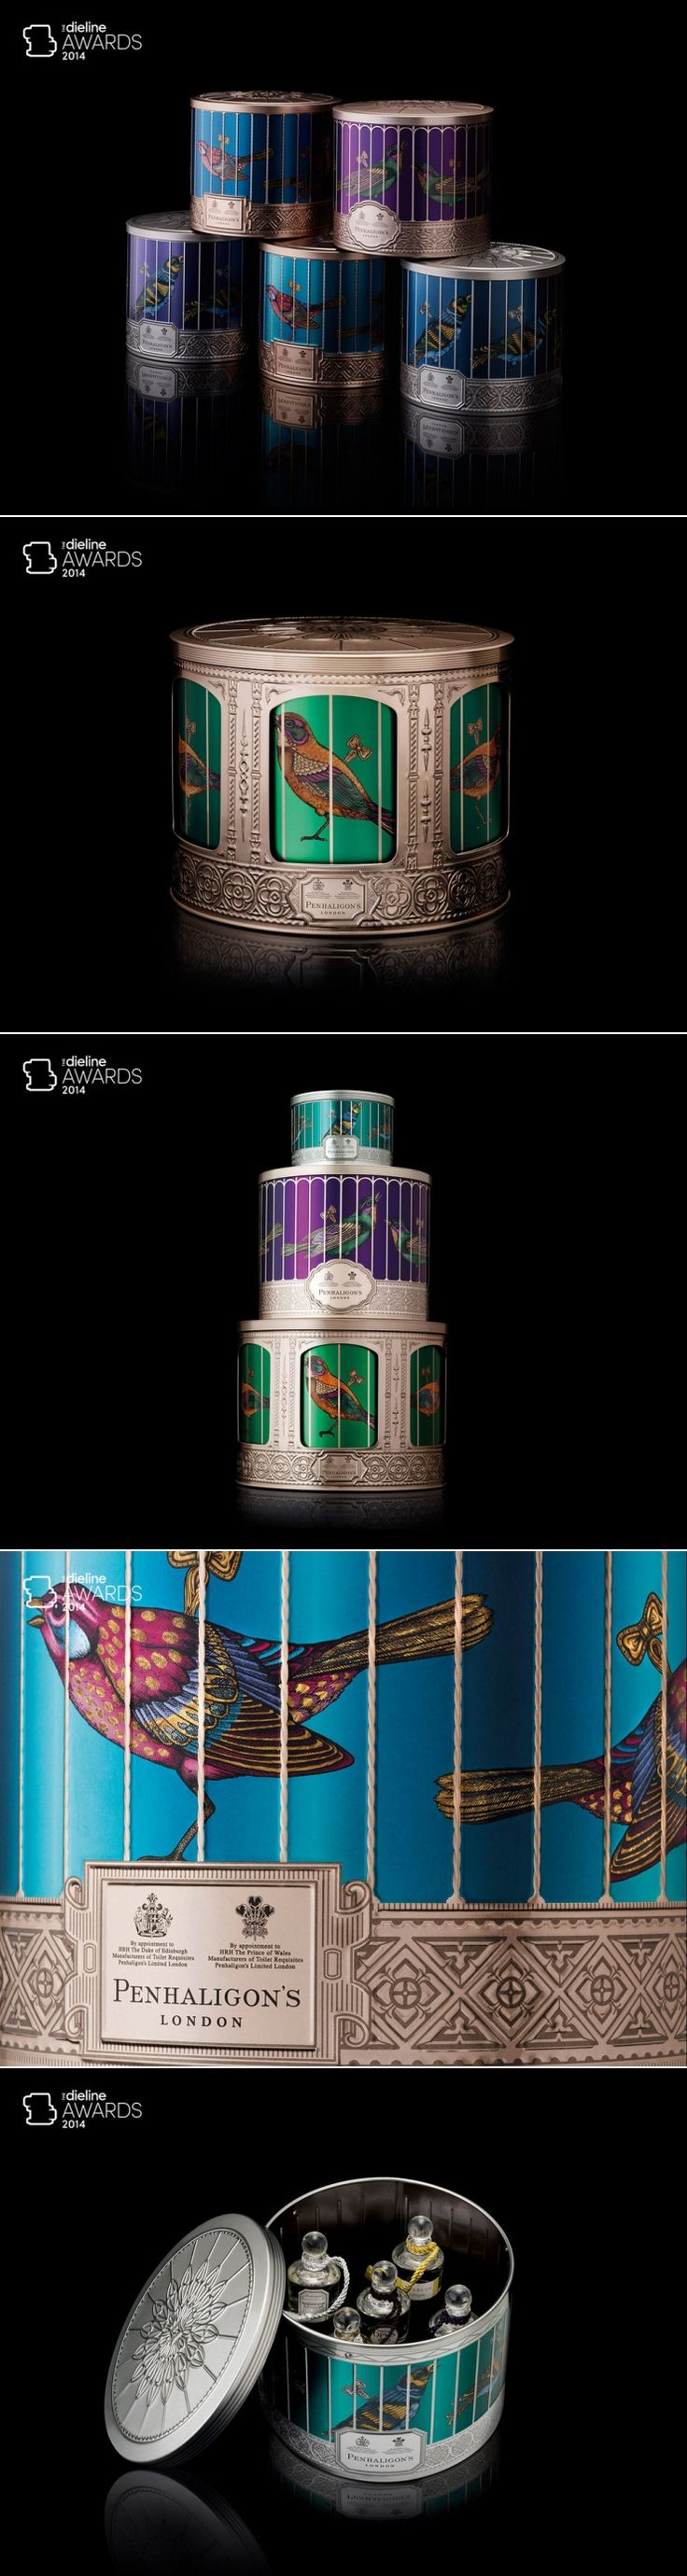 The Dieline Awards 2014: Health & Beauty, 1st Place – Penhaligon's Musical Christmas Gift Collection — The Dieline | Packaging & Branding Design